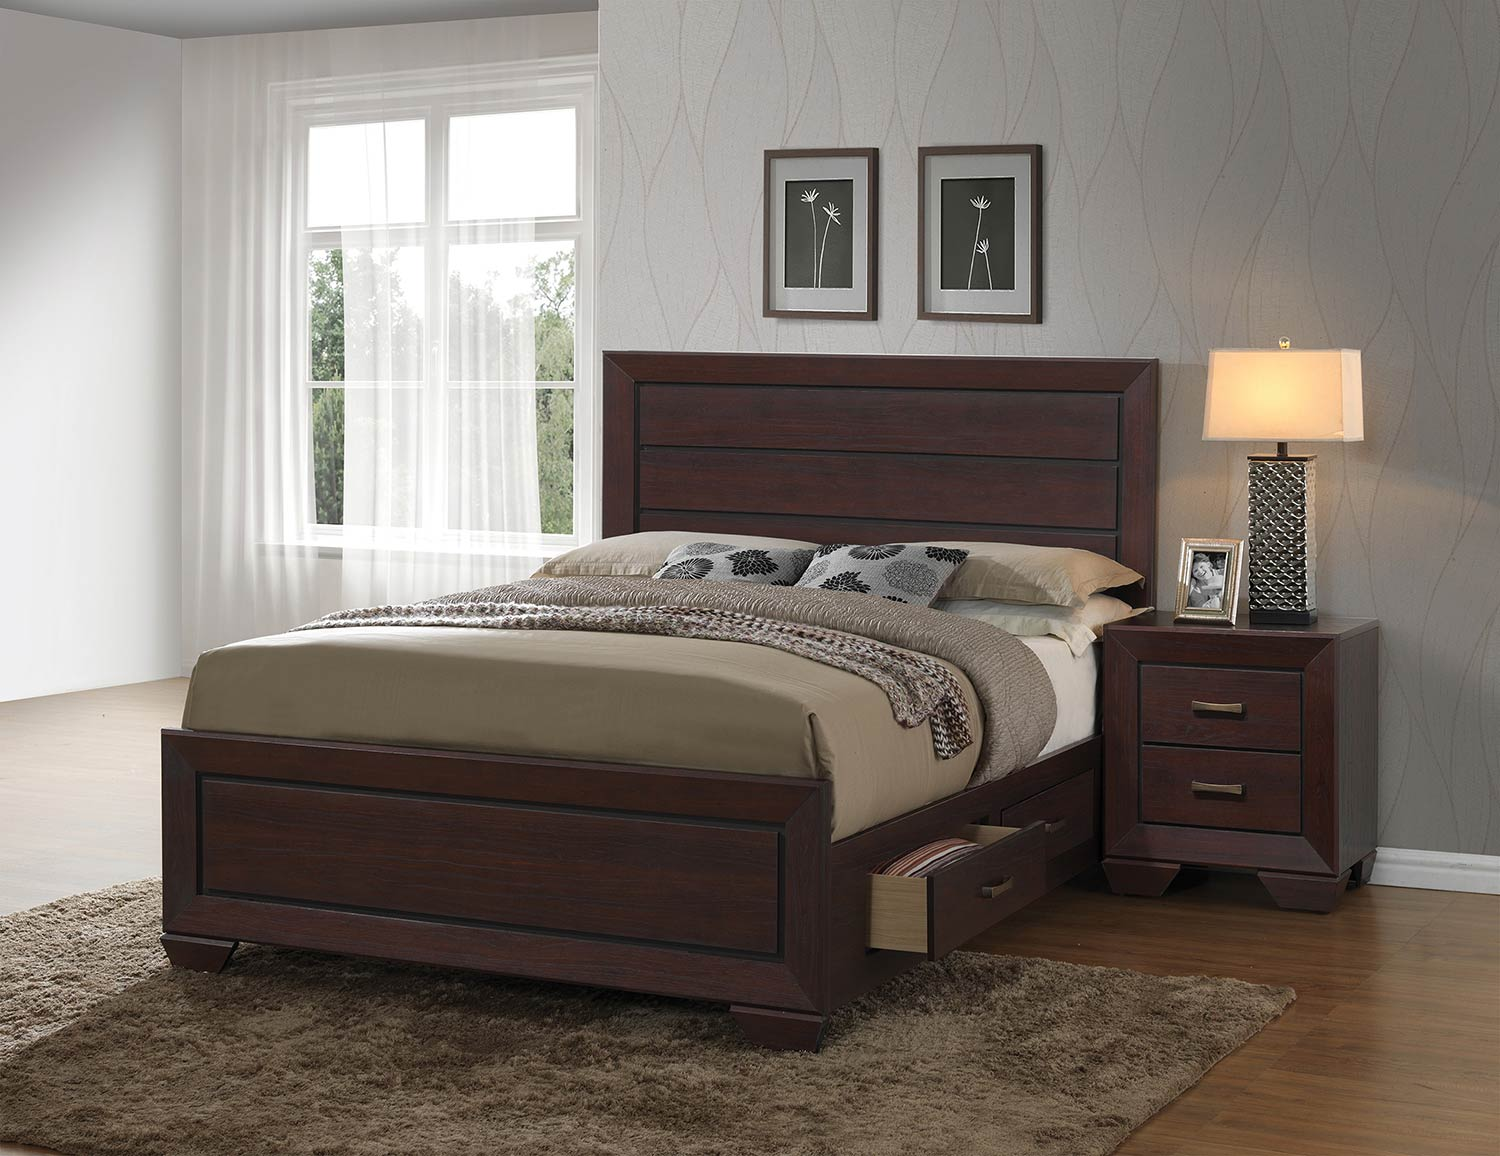 coaster bedroom sets coaster fenbrook bedroom set cocoa 204390 bedroom 11149